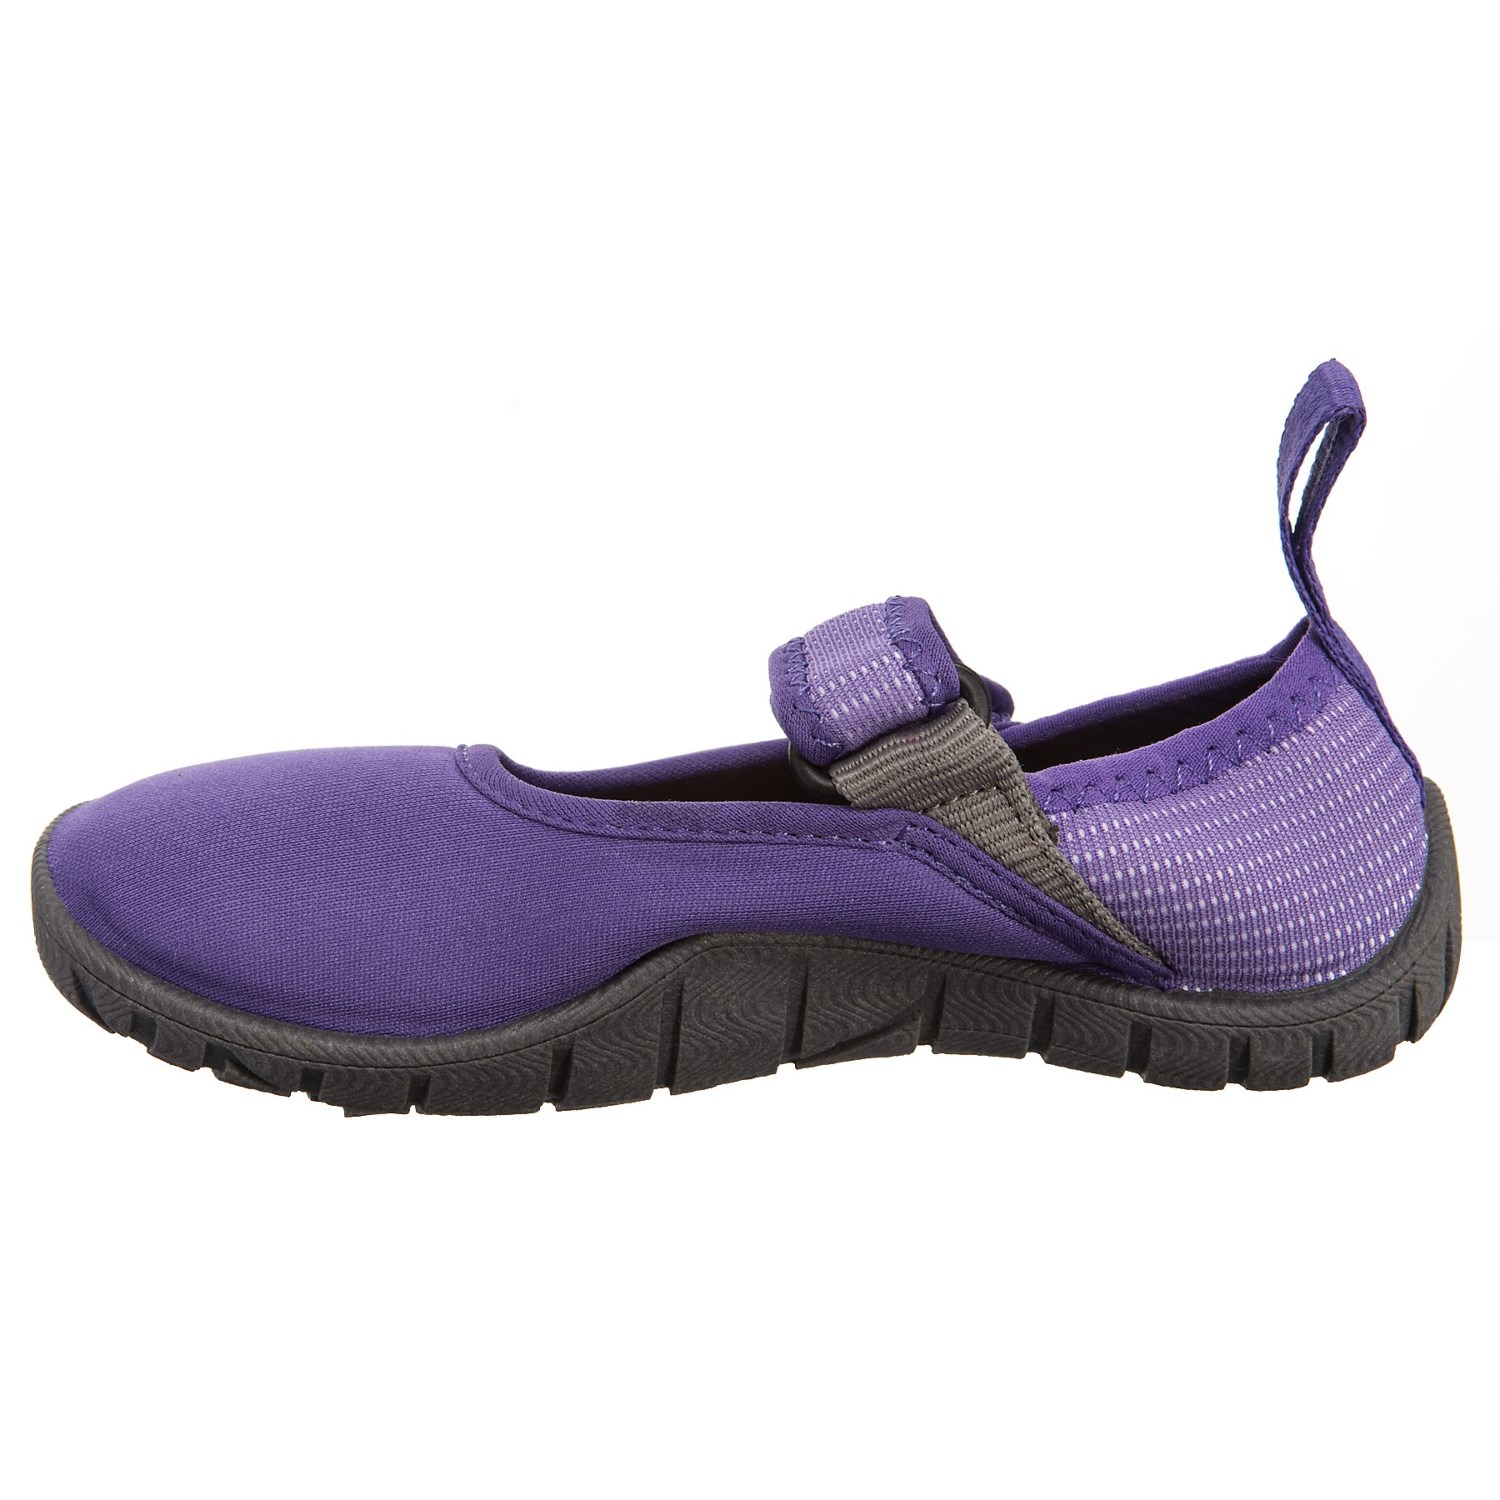 e9735a01e5d4 Rafters Hilo Mary Jane Water Shoes (For Toddler Girls) - Save 41%